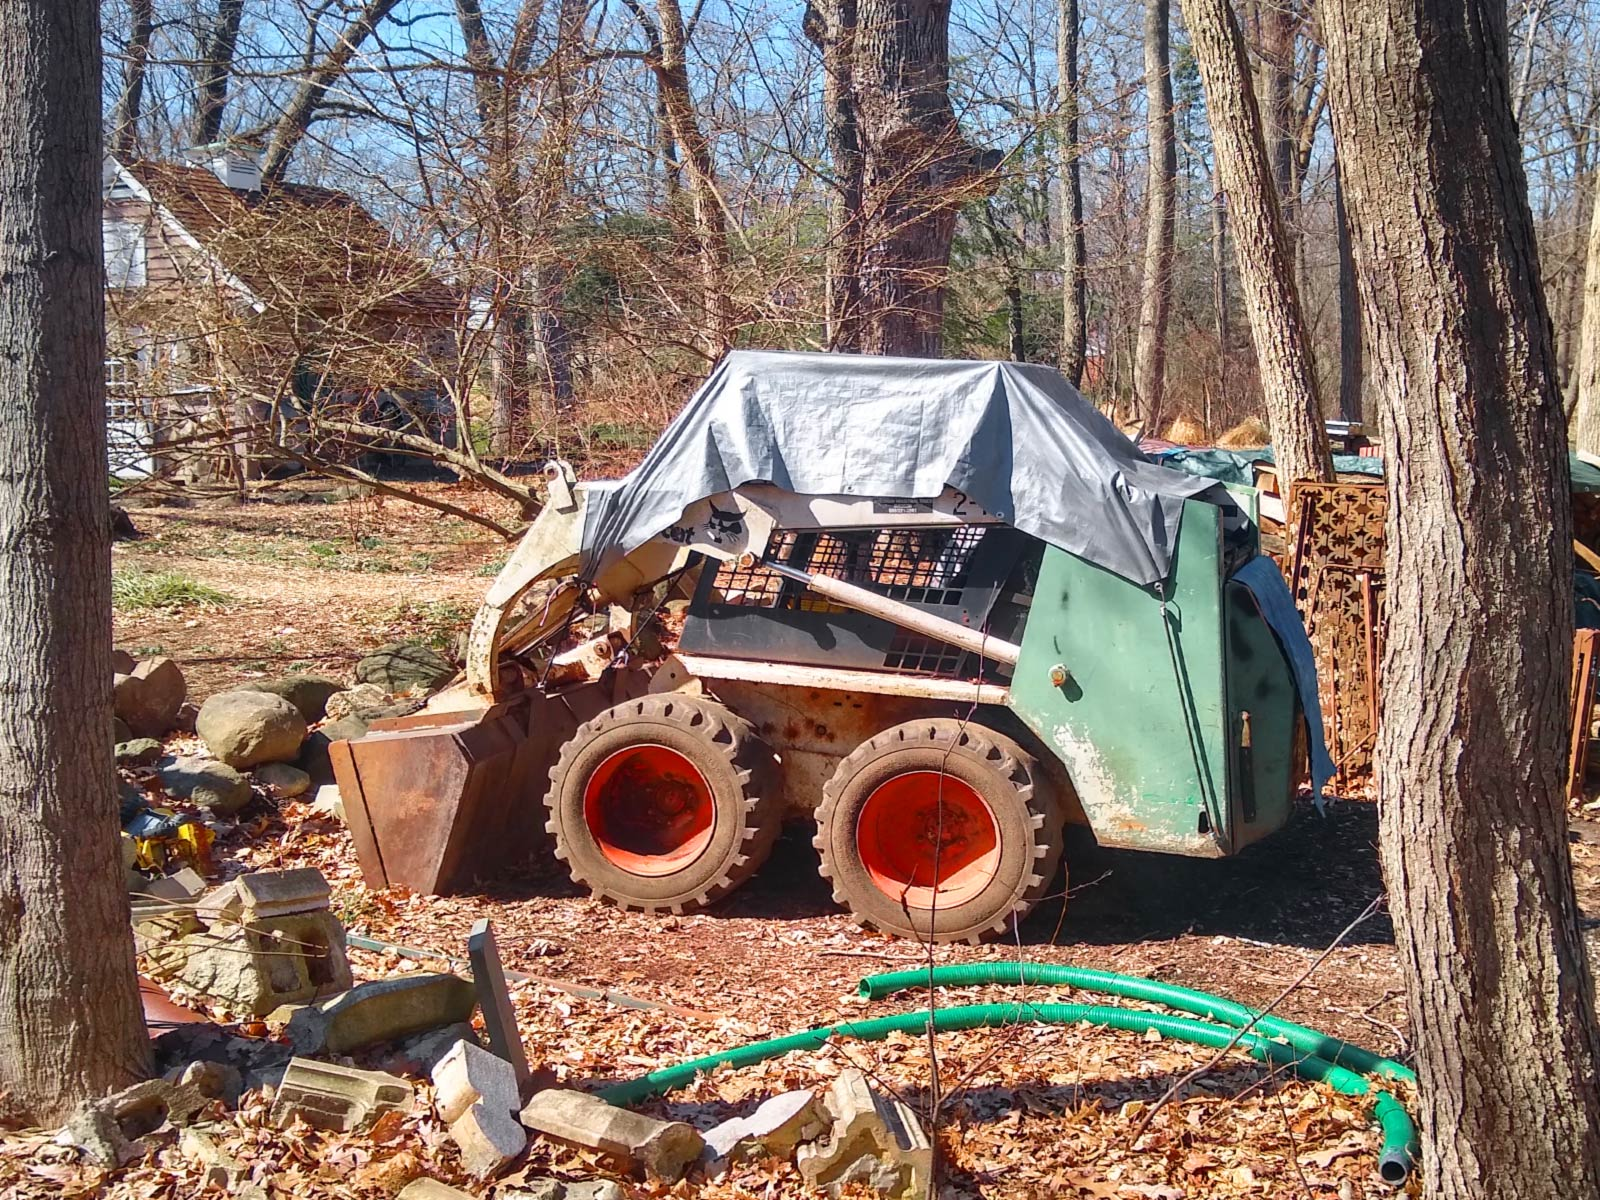 A small back hoe under a storage tarp on public trails.